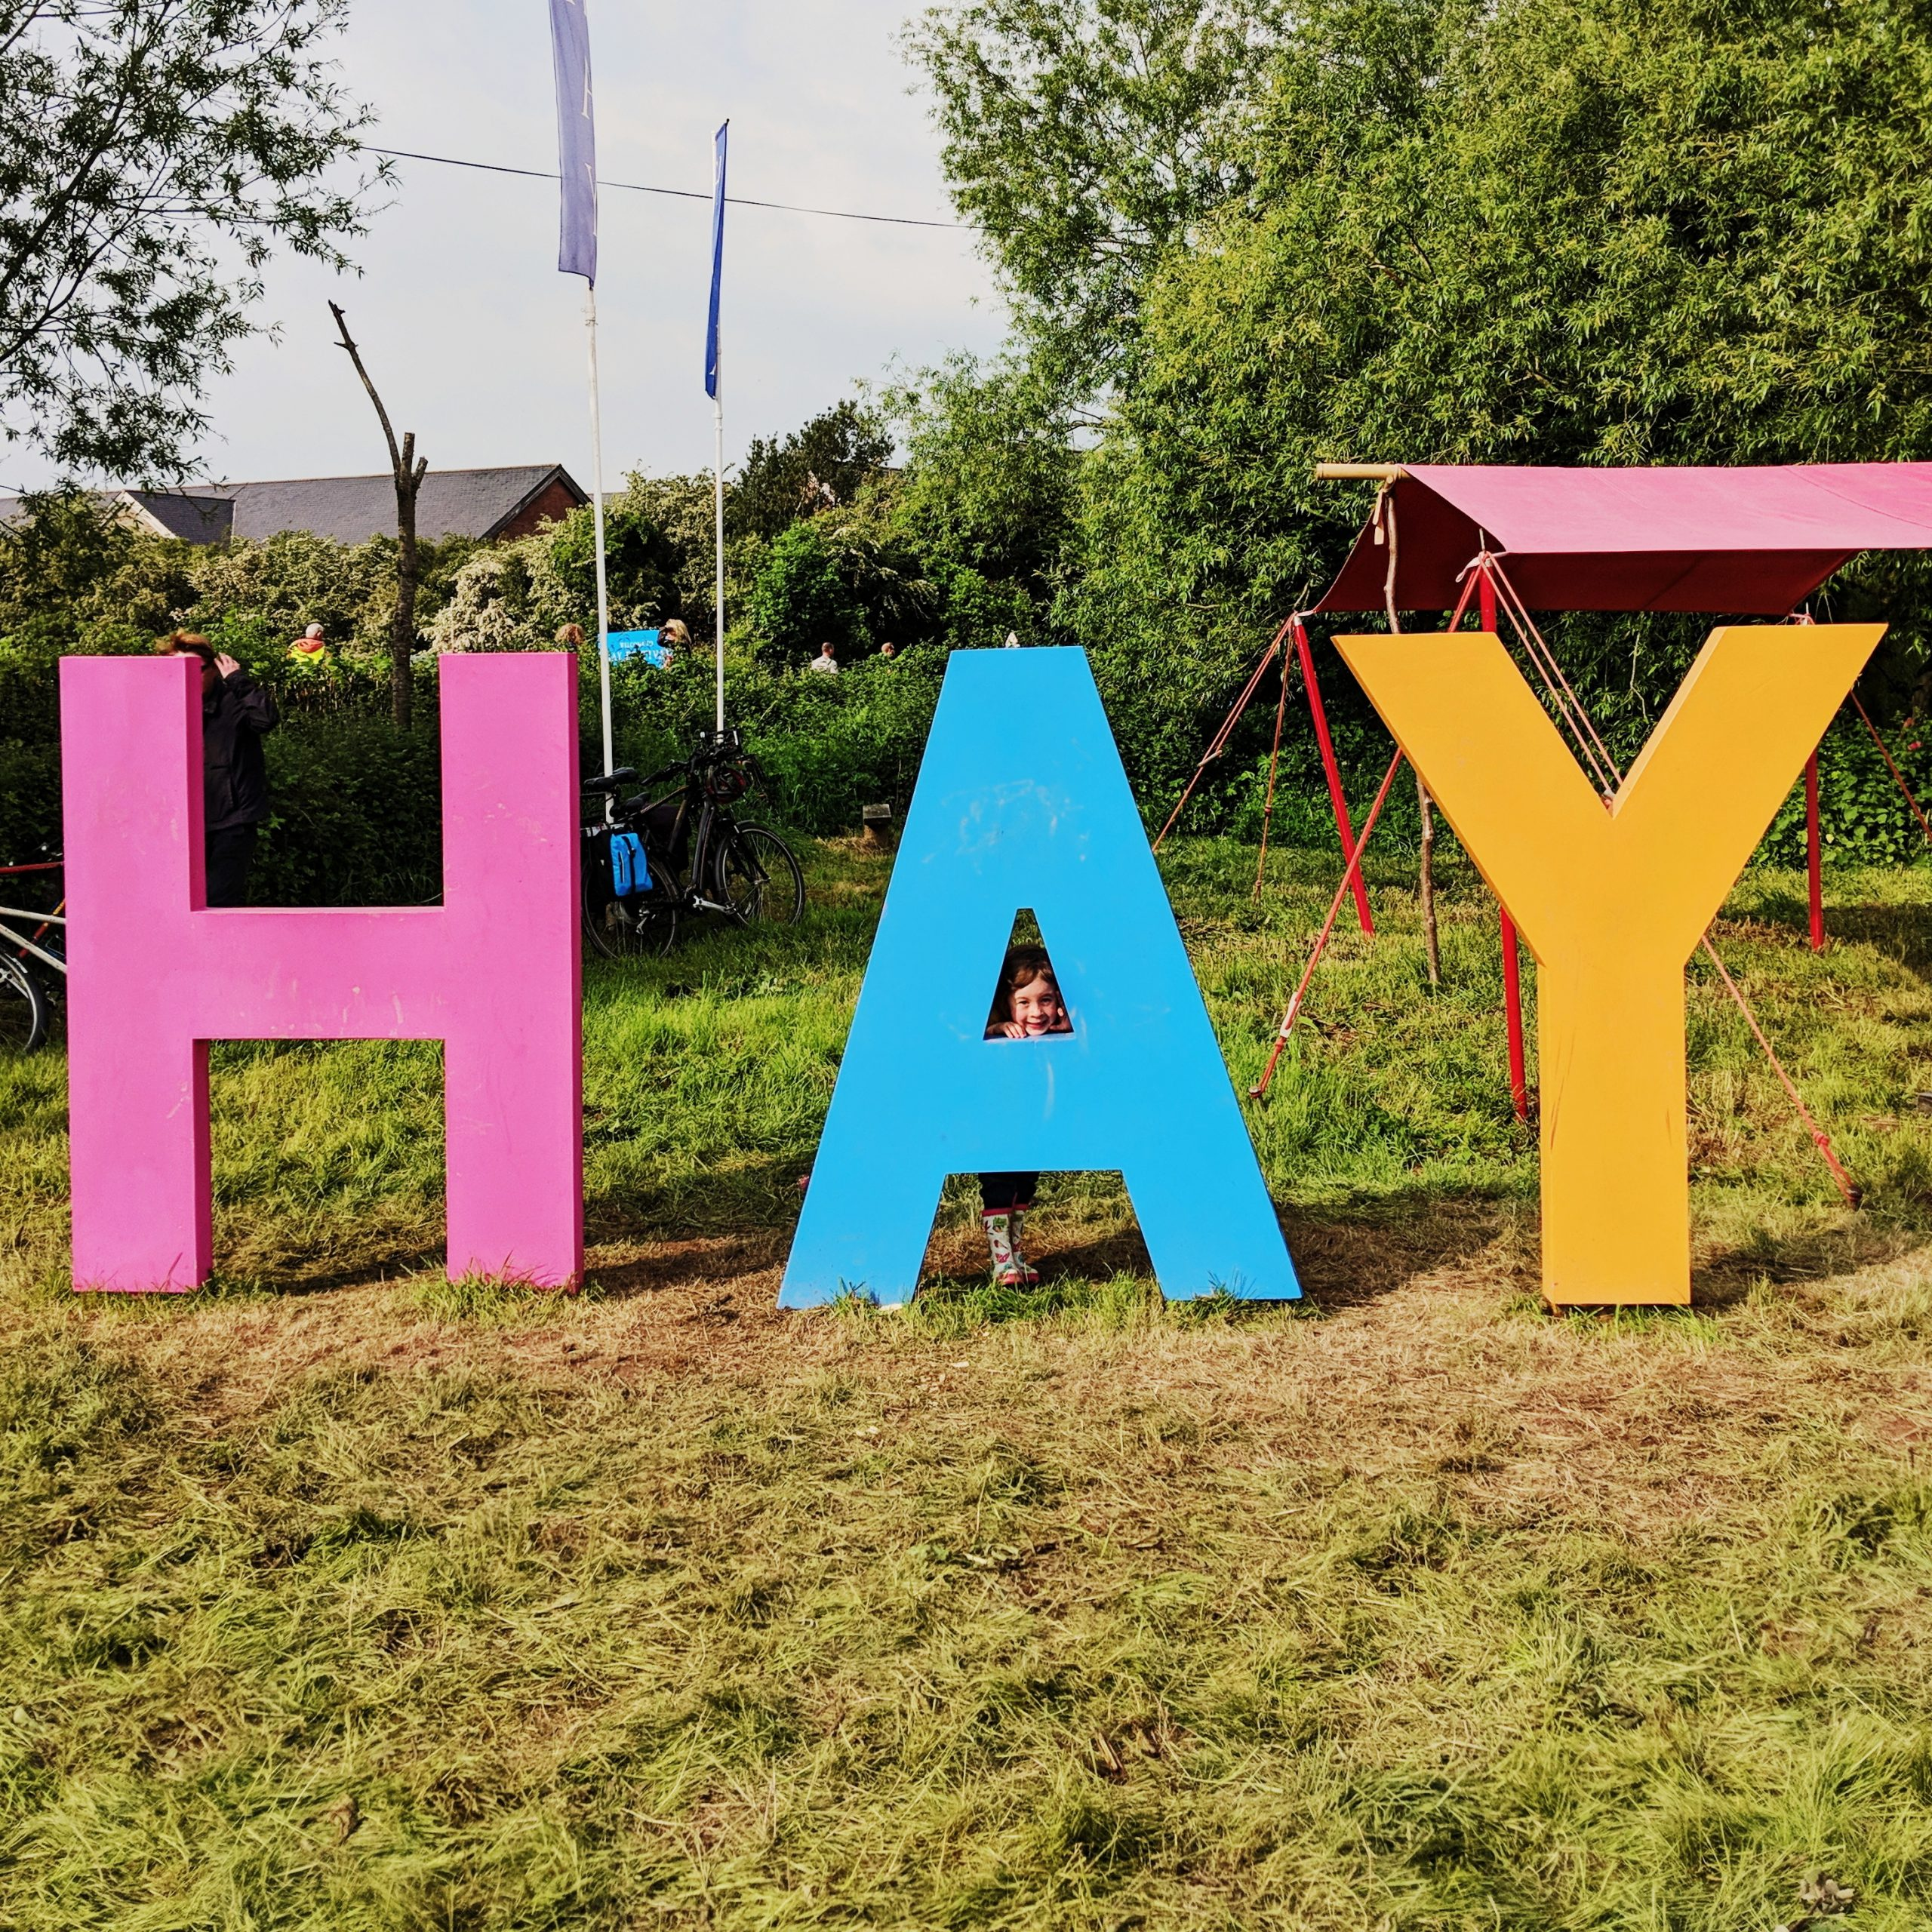 10 Tips for Planning a Successful Visit to the Hay Festival